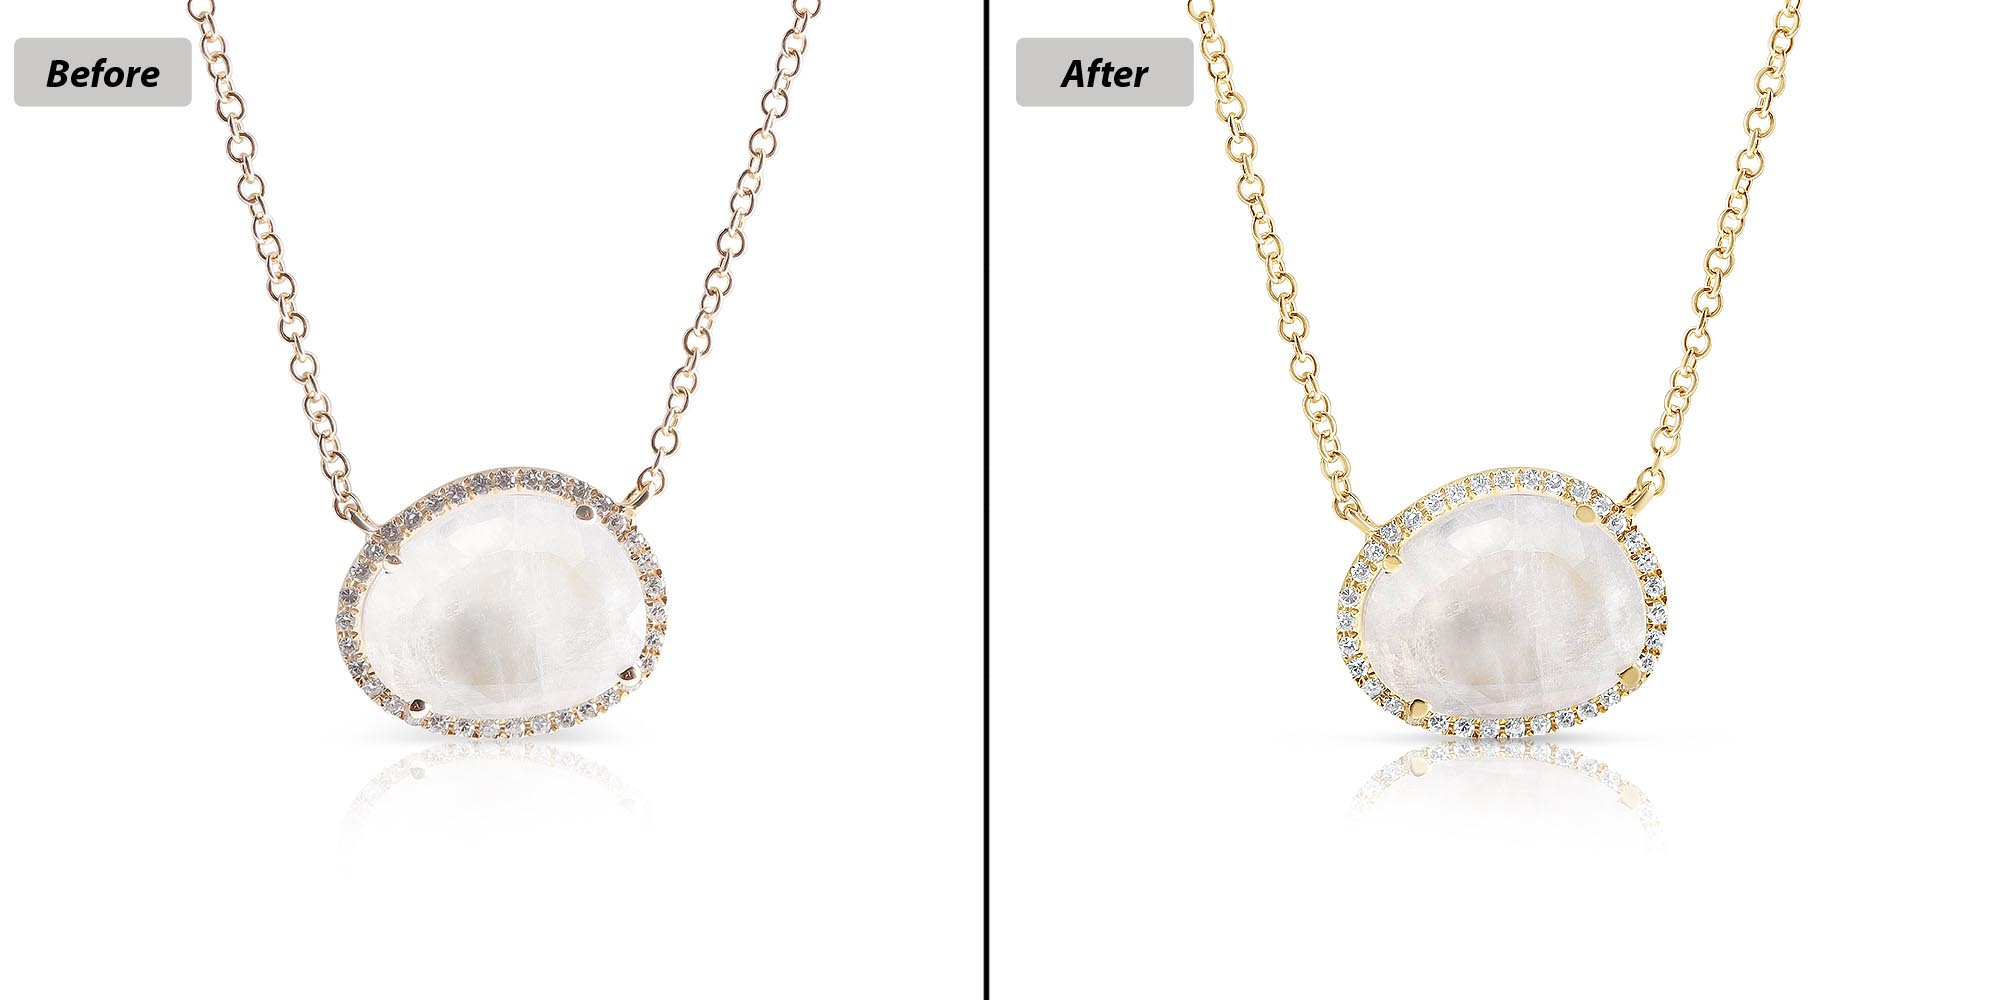 Clipping Charm_Jewellery retouch 0108